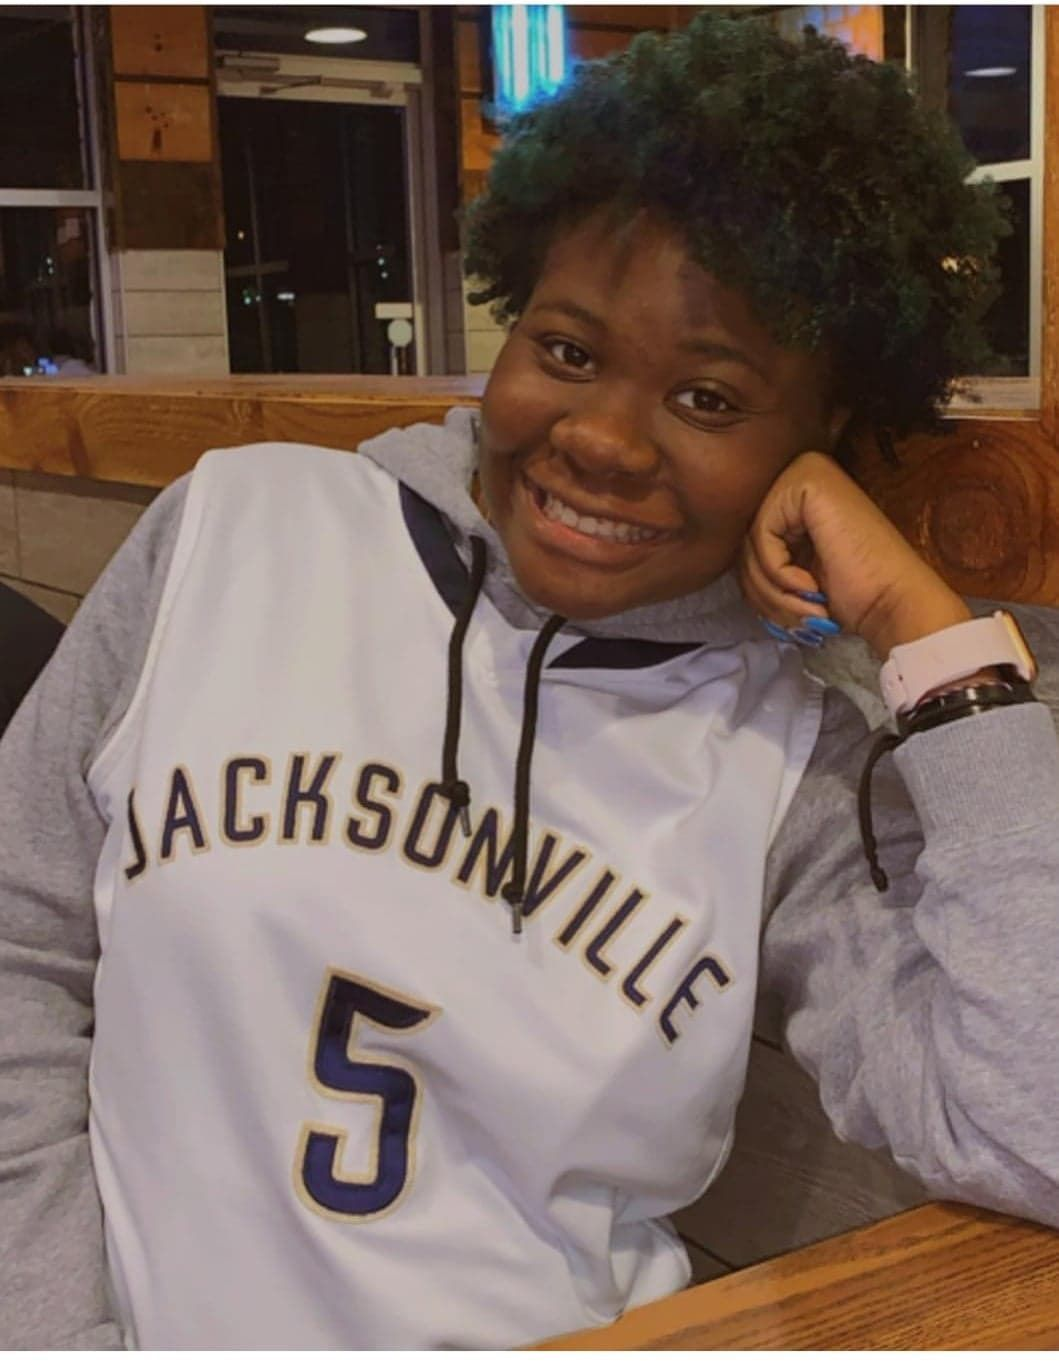 Mom speaks out after gunshot leaves local teen 'temporarily' paralyzed